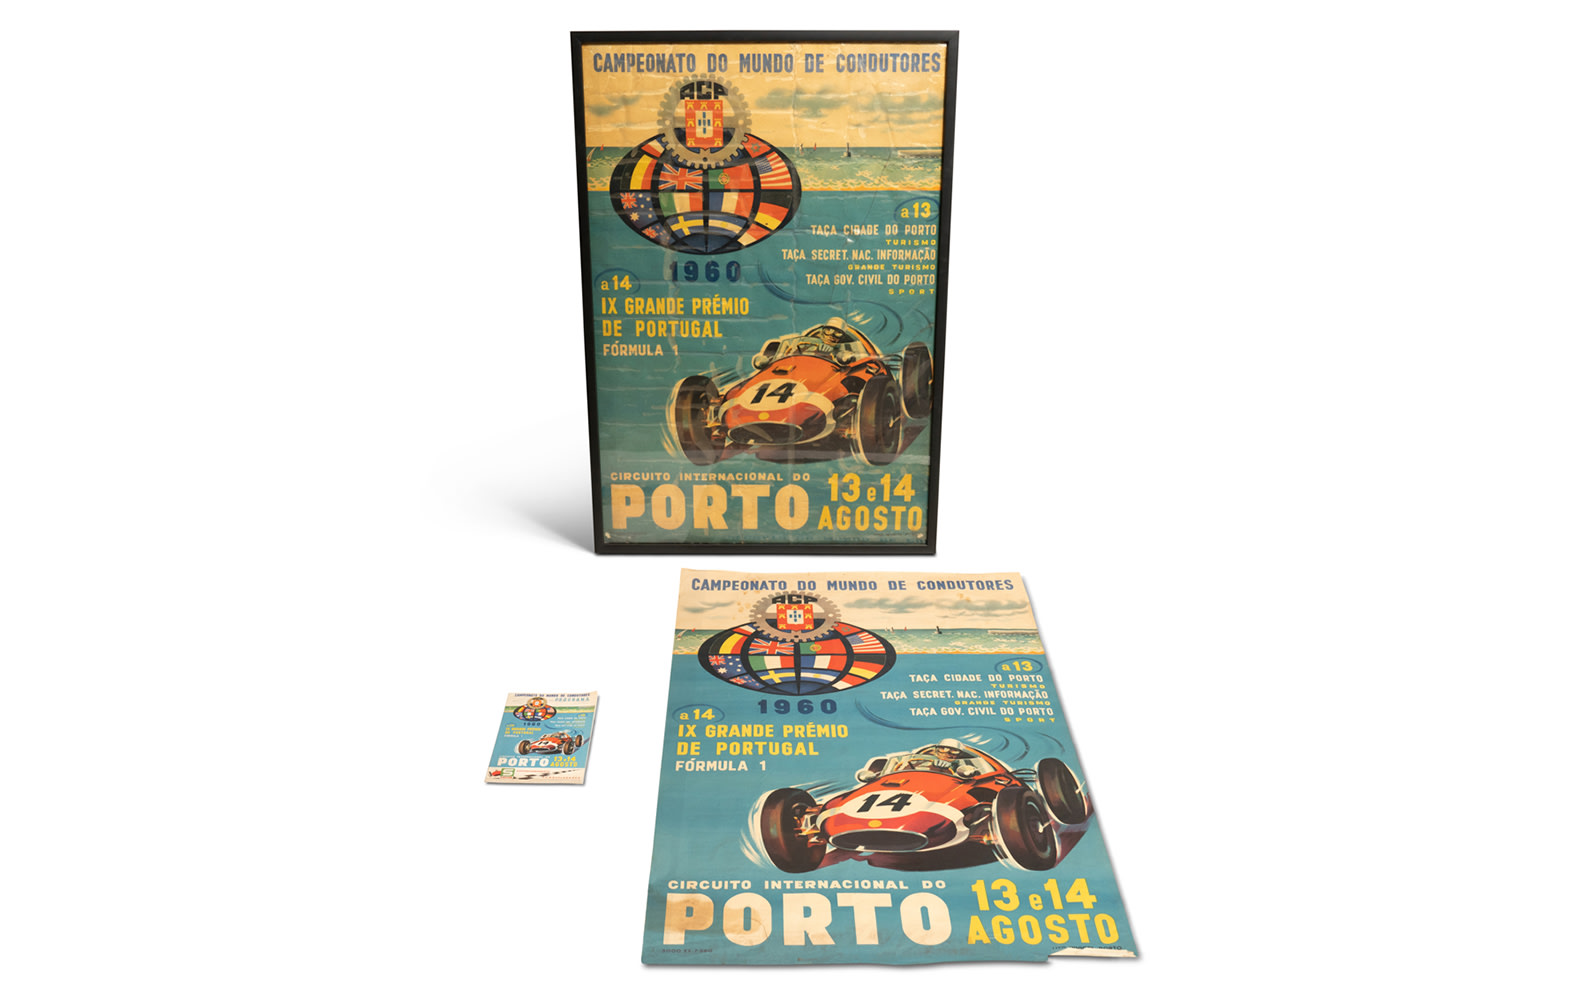 1960 Grand Premio de Portugal Official Race Program and Posters, Framed and Unframed